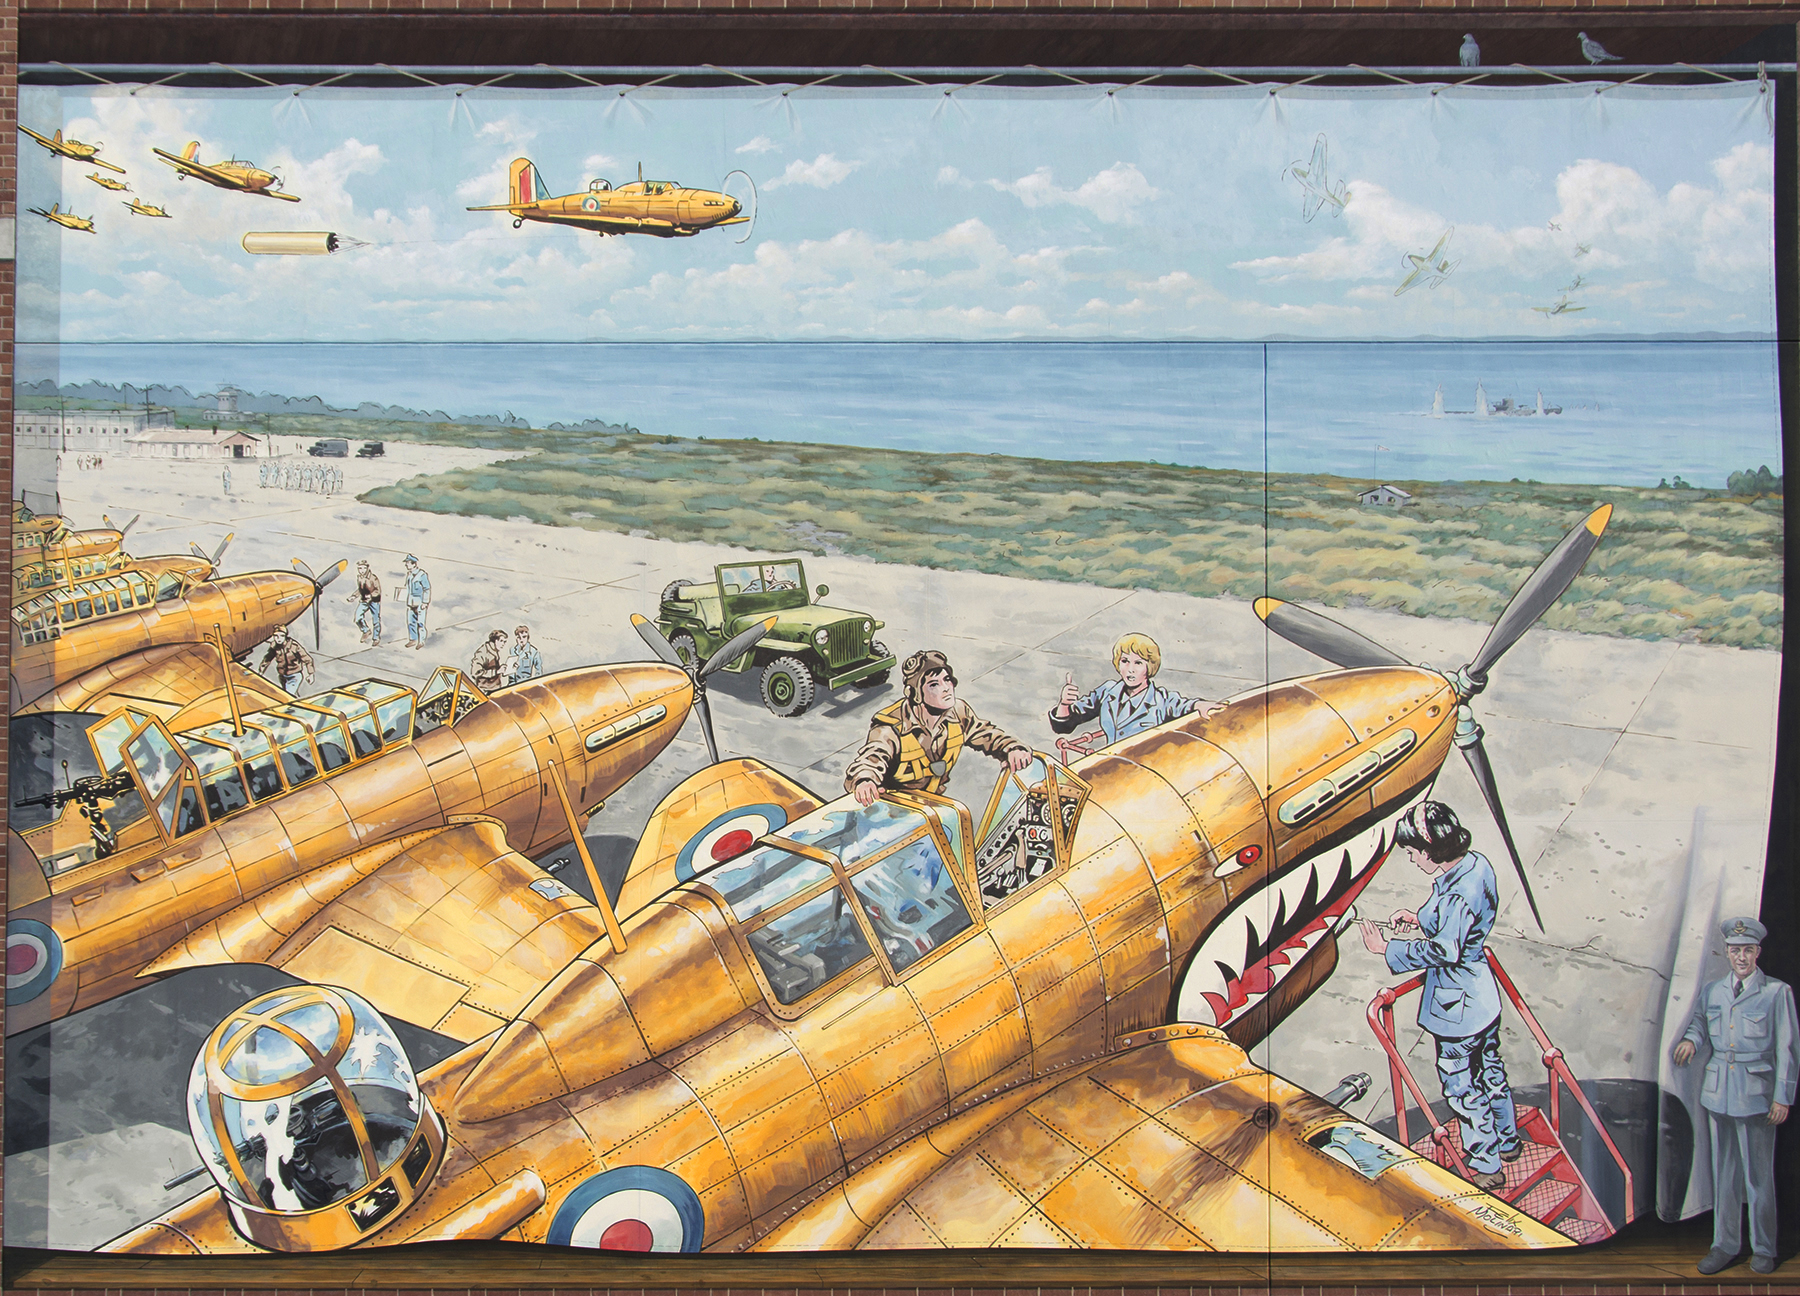 In a painting, fighter aircraft, led by one towing a target drogue, head over a river, while others are serviced on an airfield.